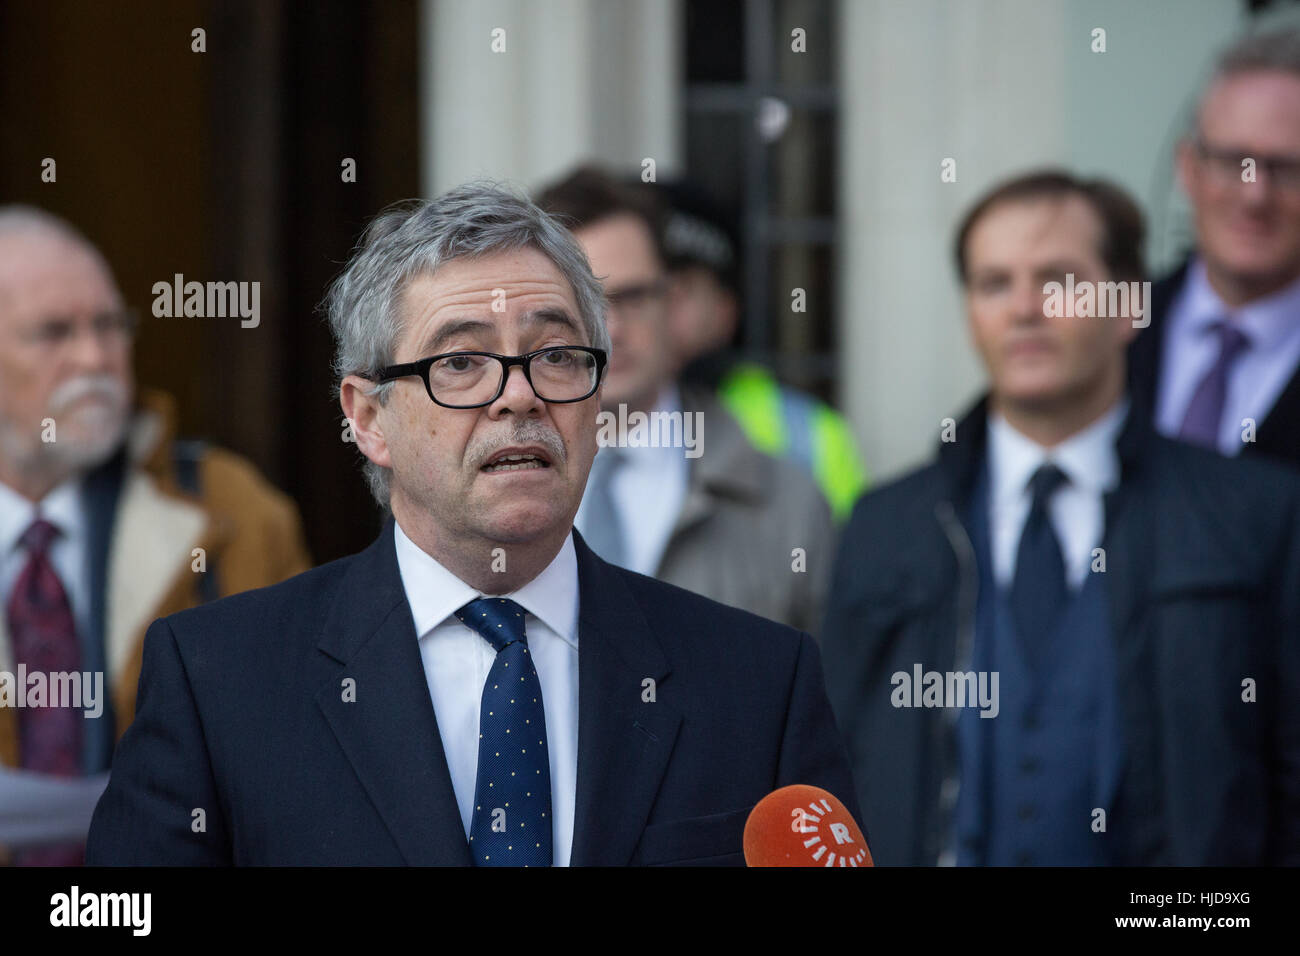 London, UK. 24th Jan, 2017. David Green, lawyer for Deir dos Santos, makes a statement following the Article 50 - Stock Image